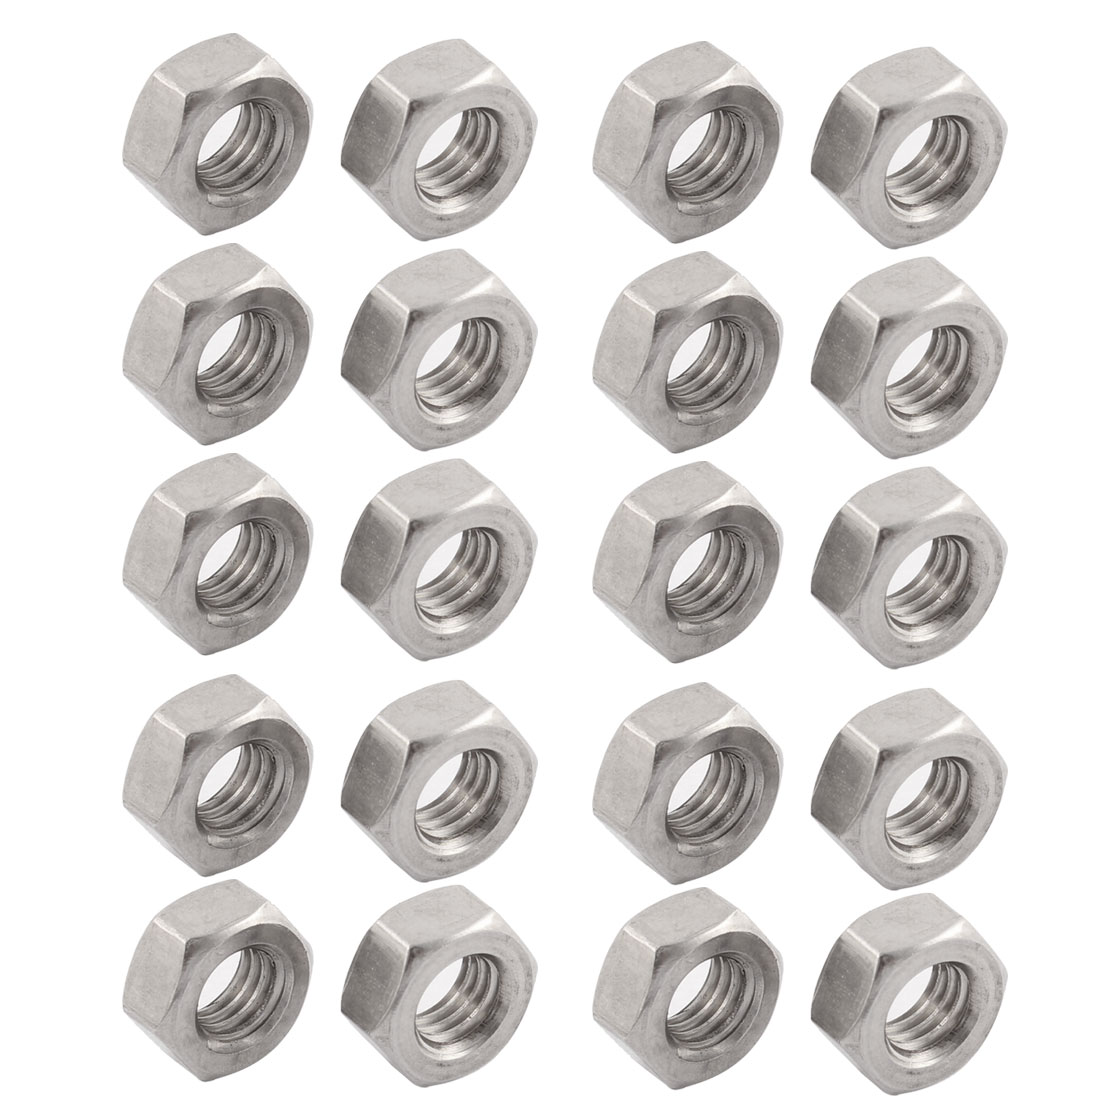 Metric M8x1.25mm Stainless Steel Finished Hexagon Hex Nut Silver Tone 20pcs